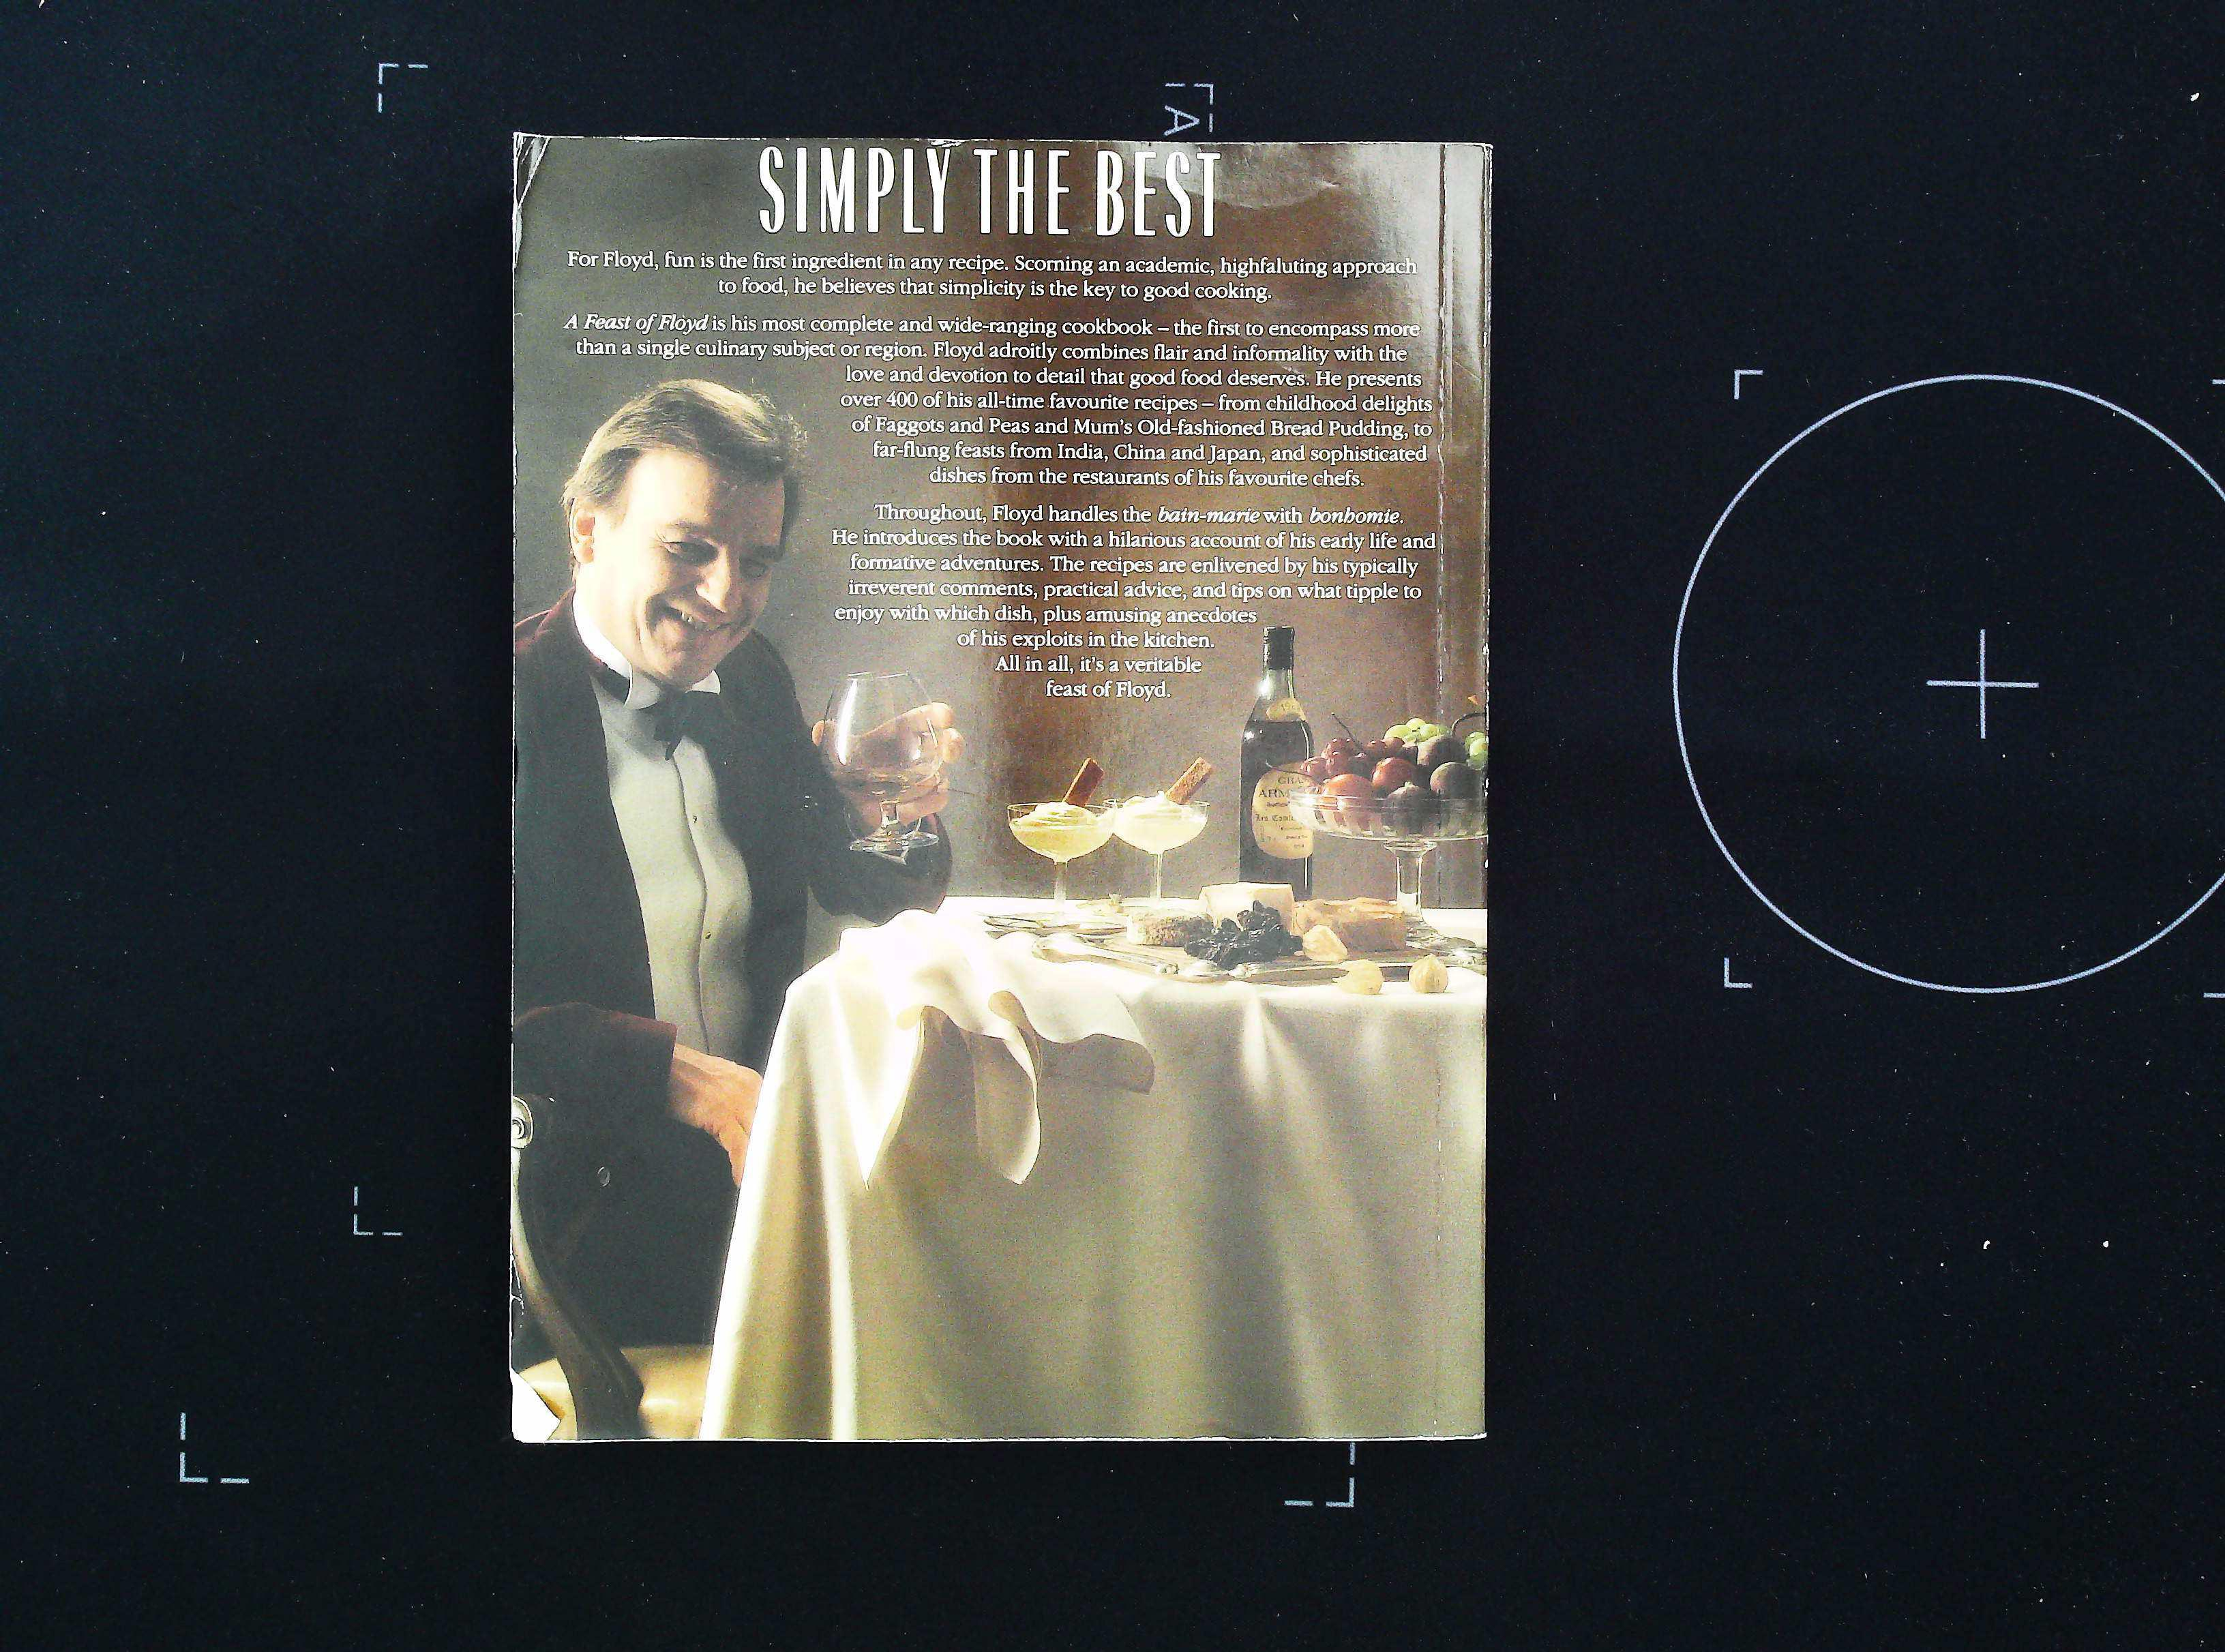 A Feast Of Floyd paperback book by Keith Floyd. Published 1994 HarperCollins. 320 pages. Cover - Image 2 of 4